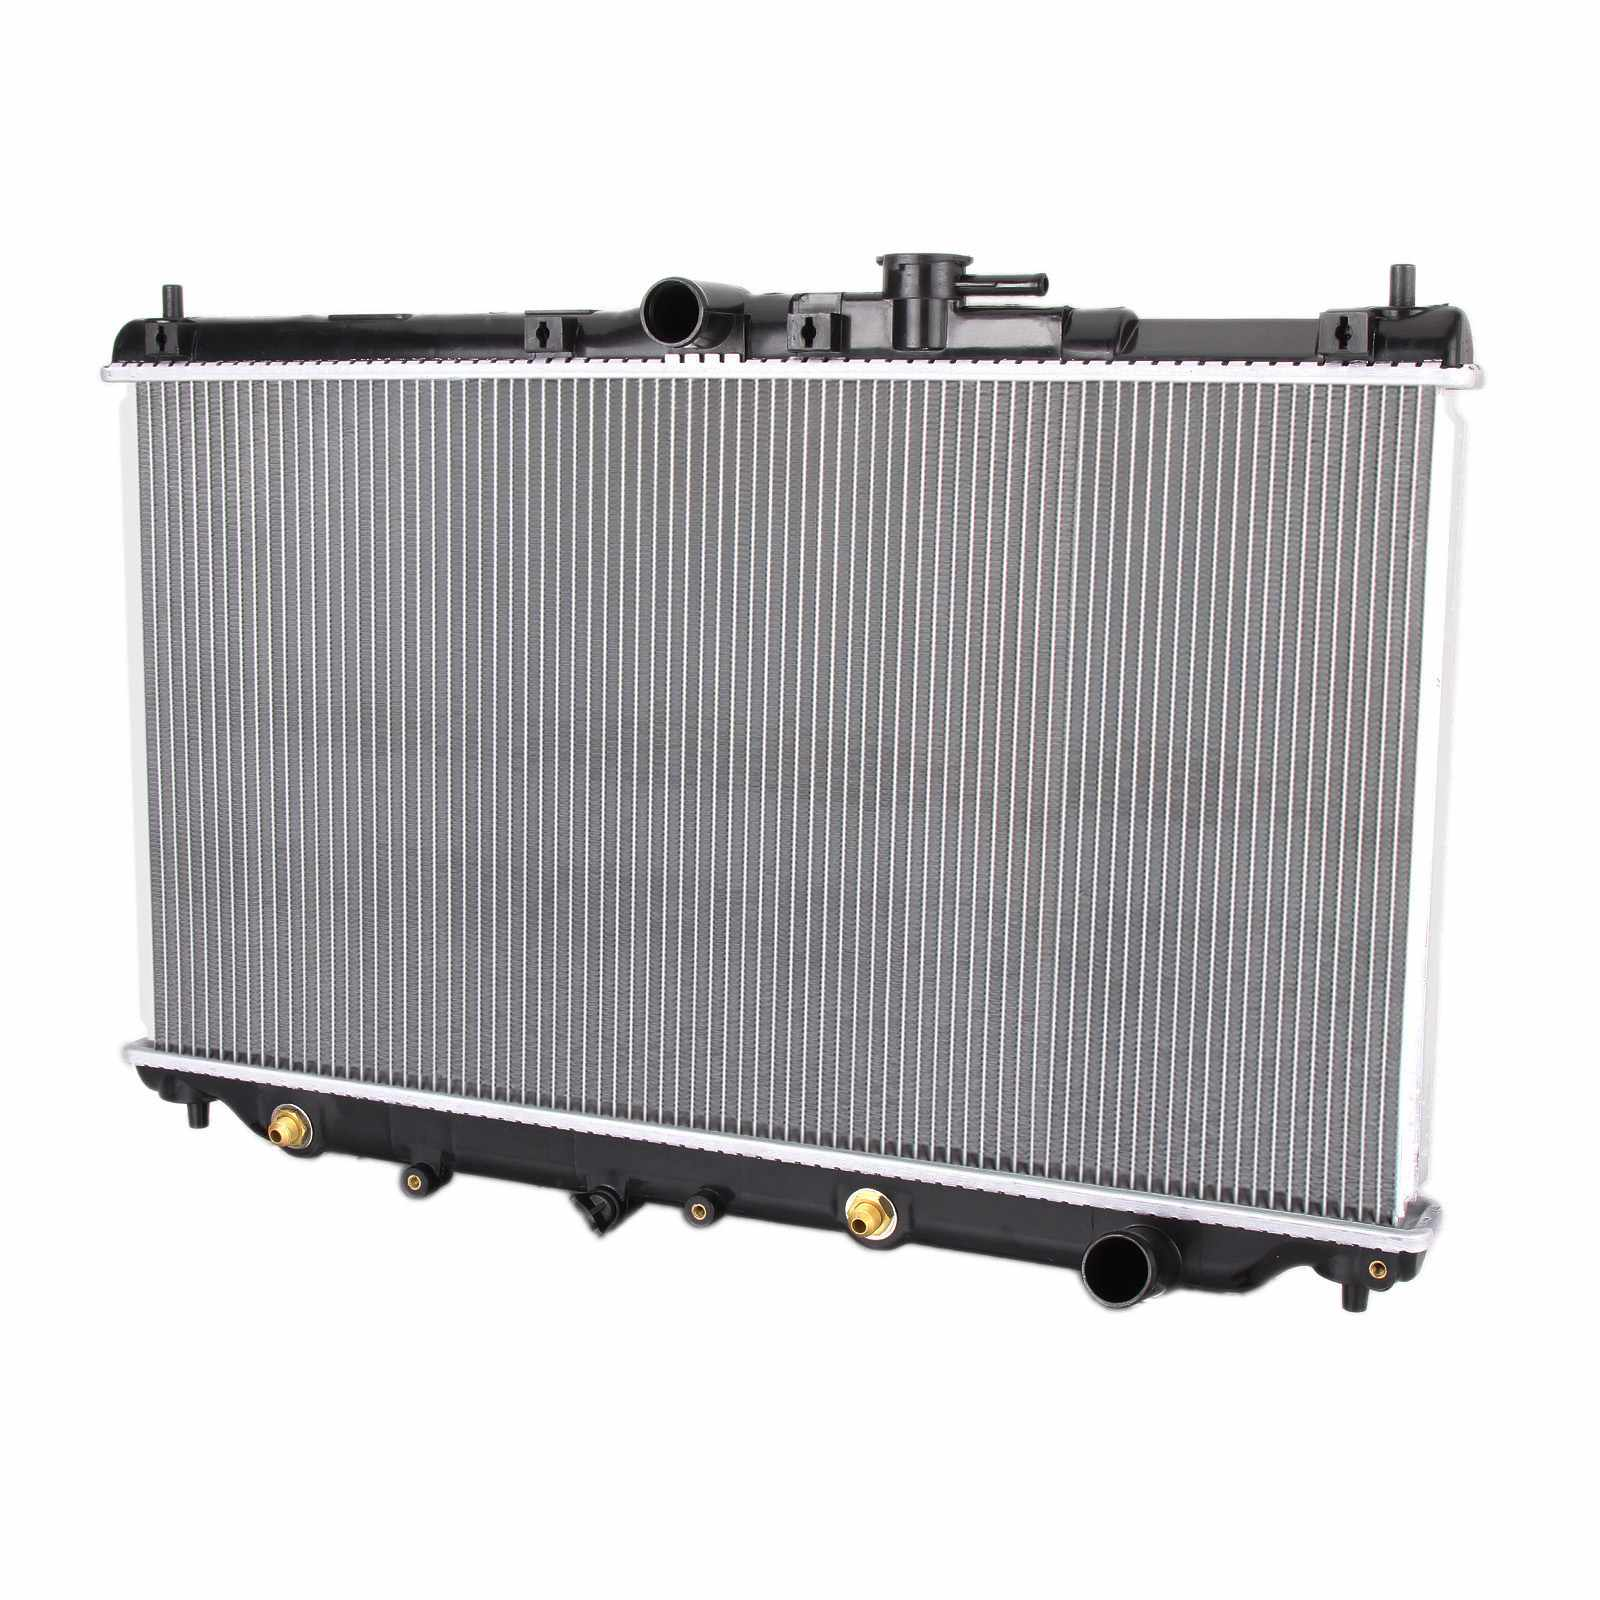 New Radiator for 1990-1993 Honda Accord CB7 SALOON 2.0L 2.2 L Auto / Manual 2207